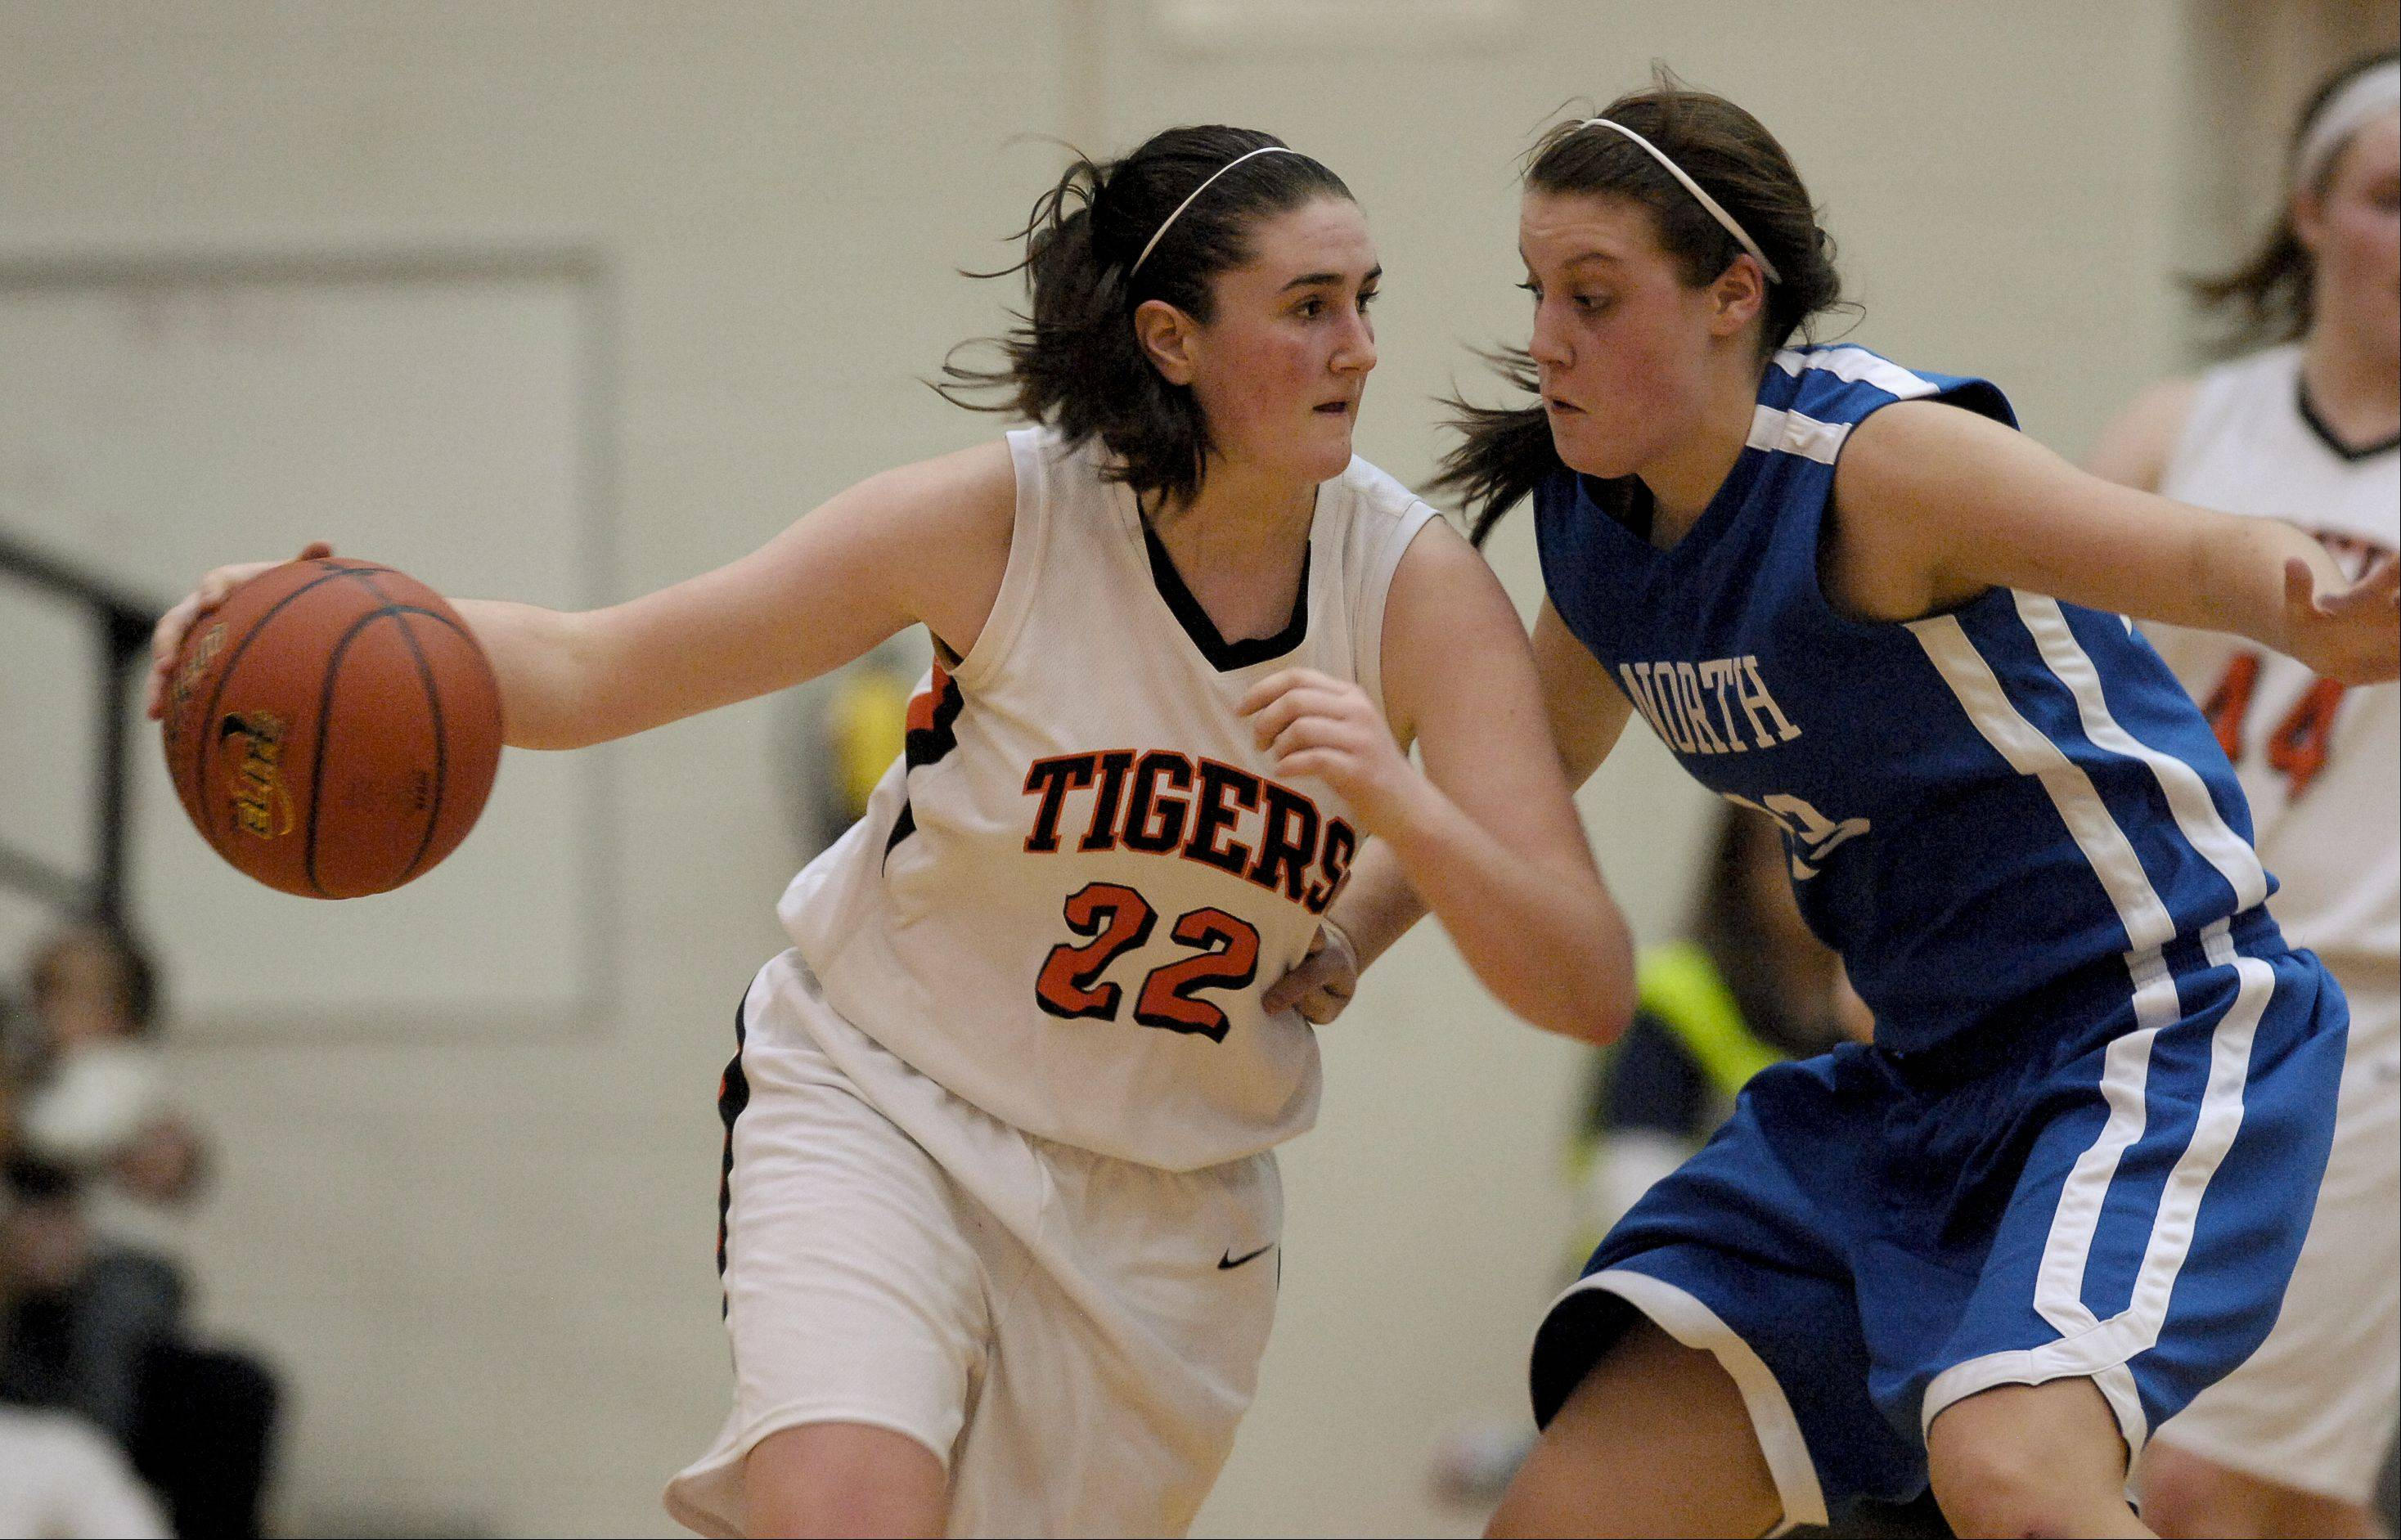 Melinda Franke of Wheaton Warrenville South looks to drive around Chrissy Baird of Wheaton North .